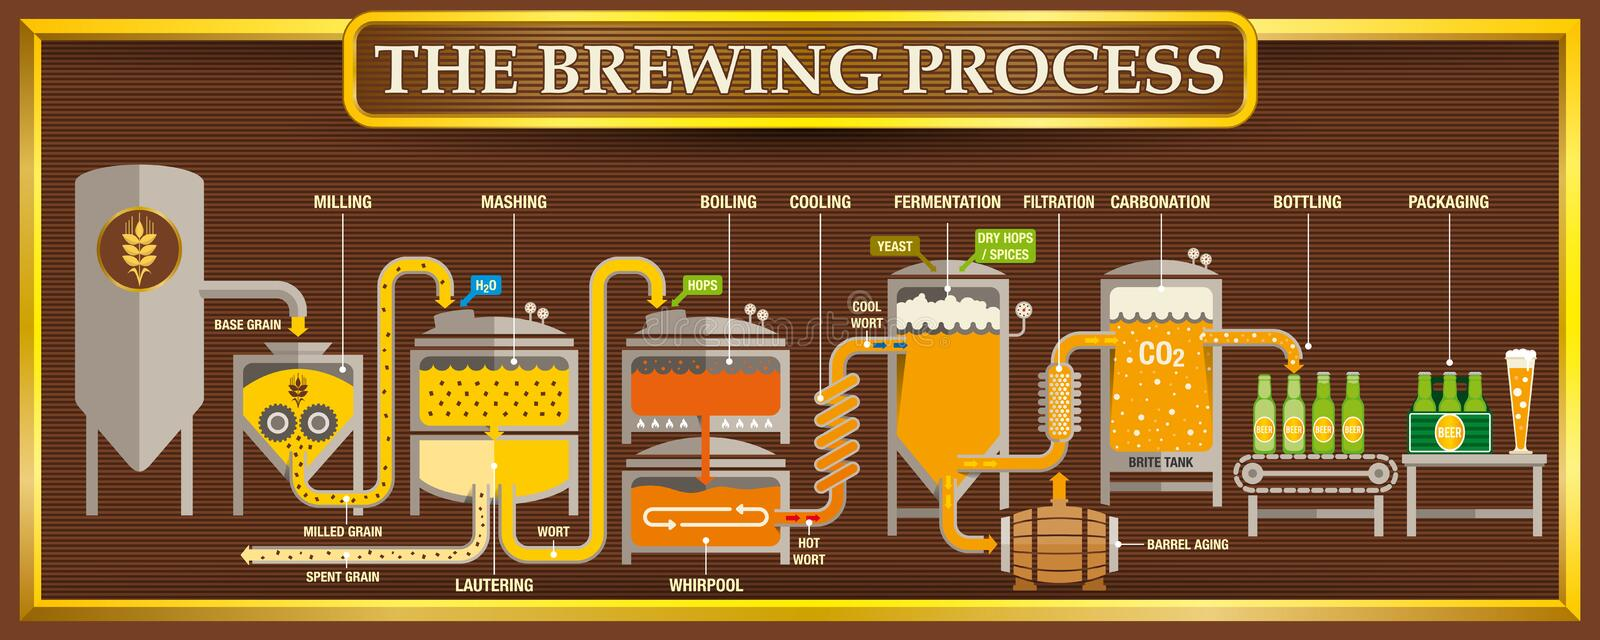 The Brewing Process info-graphic with beer design elements on brown background with golden frame royalty free illustration